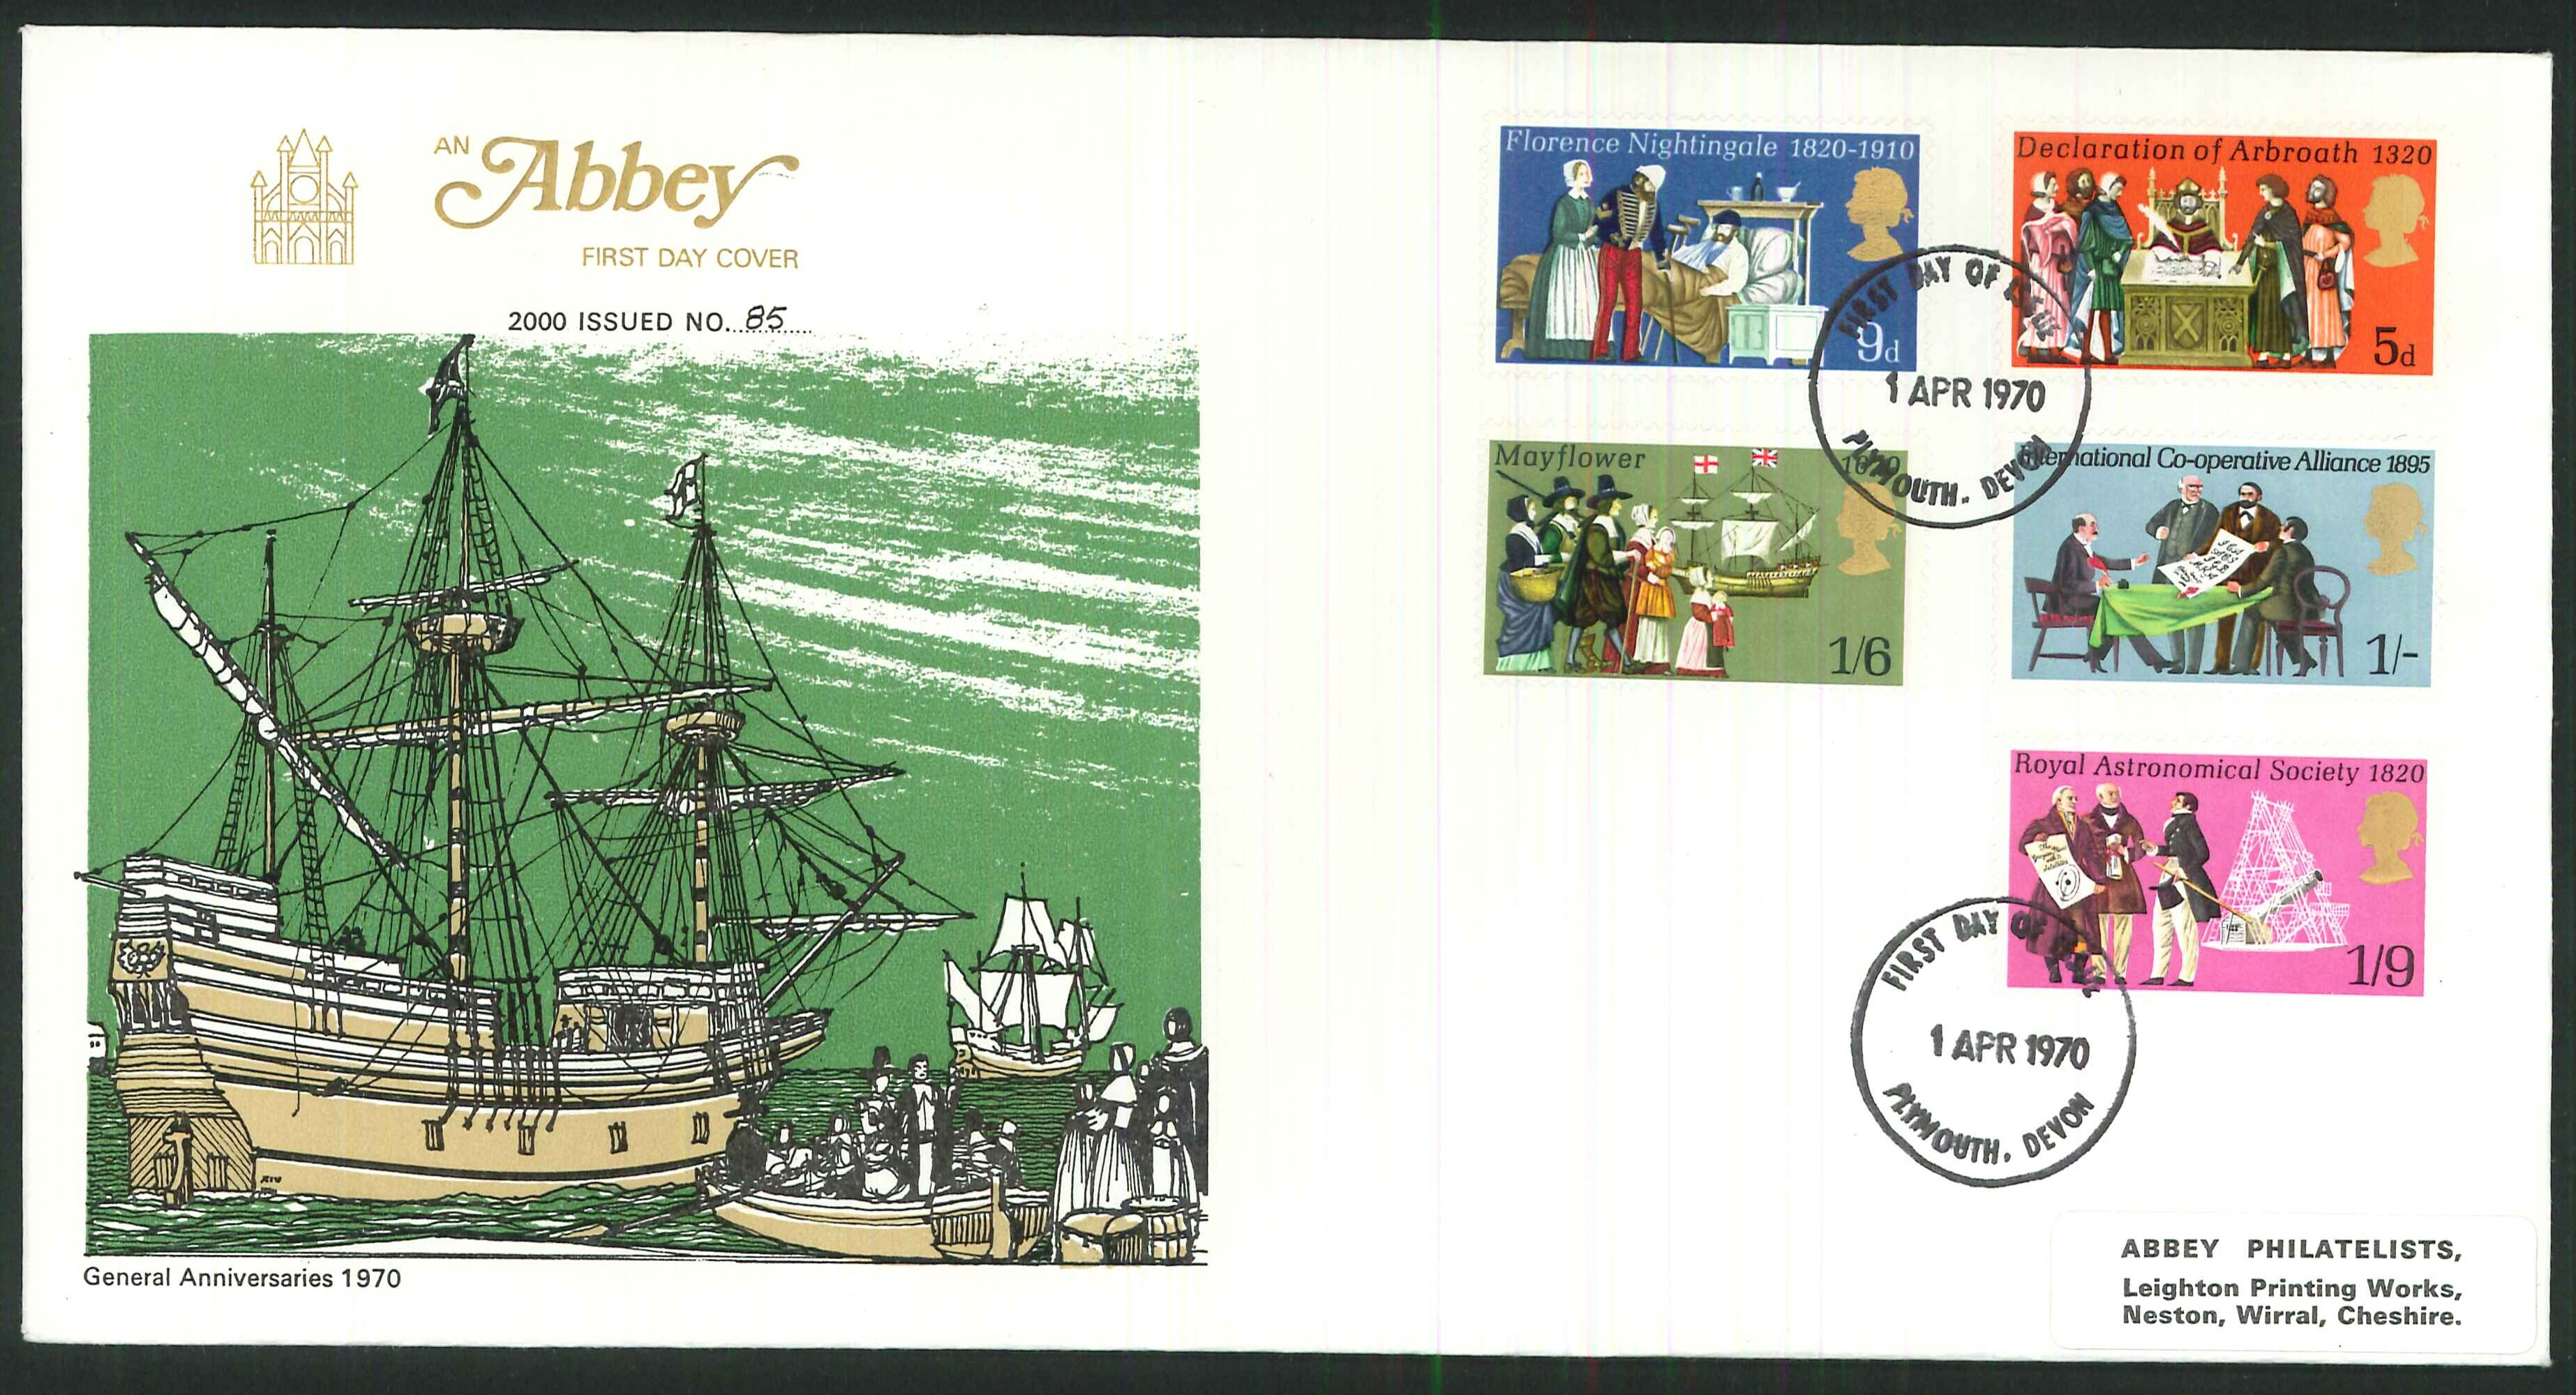 1970 - General Anniversaries, First Day Cover, Plymouth Postmark